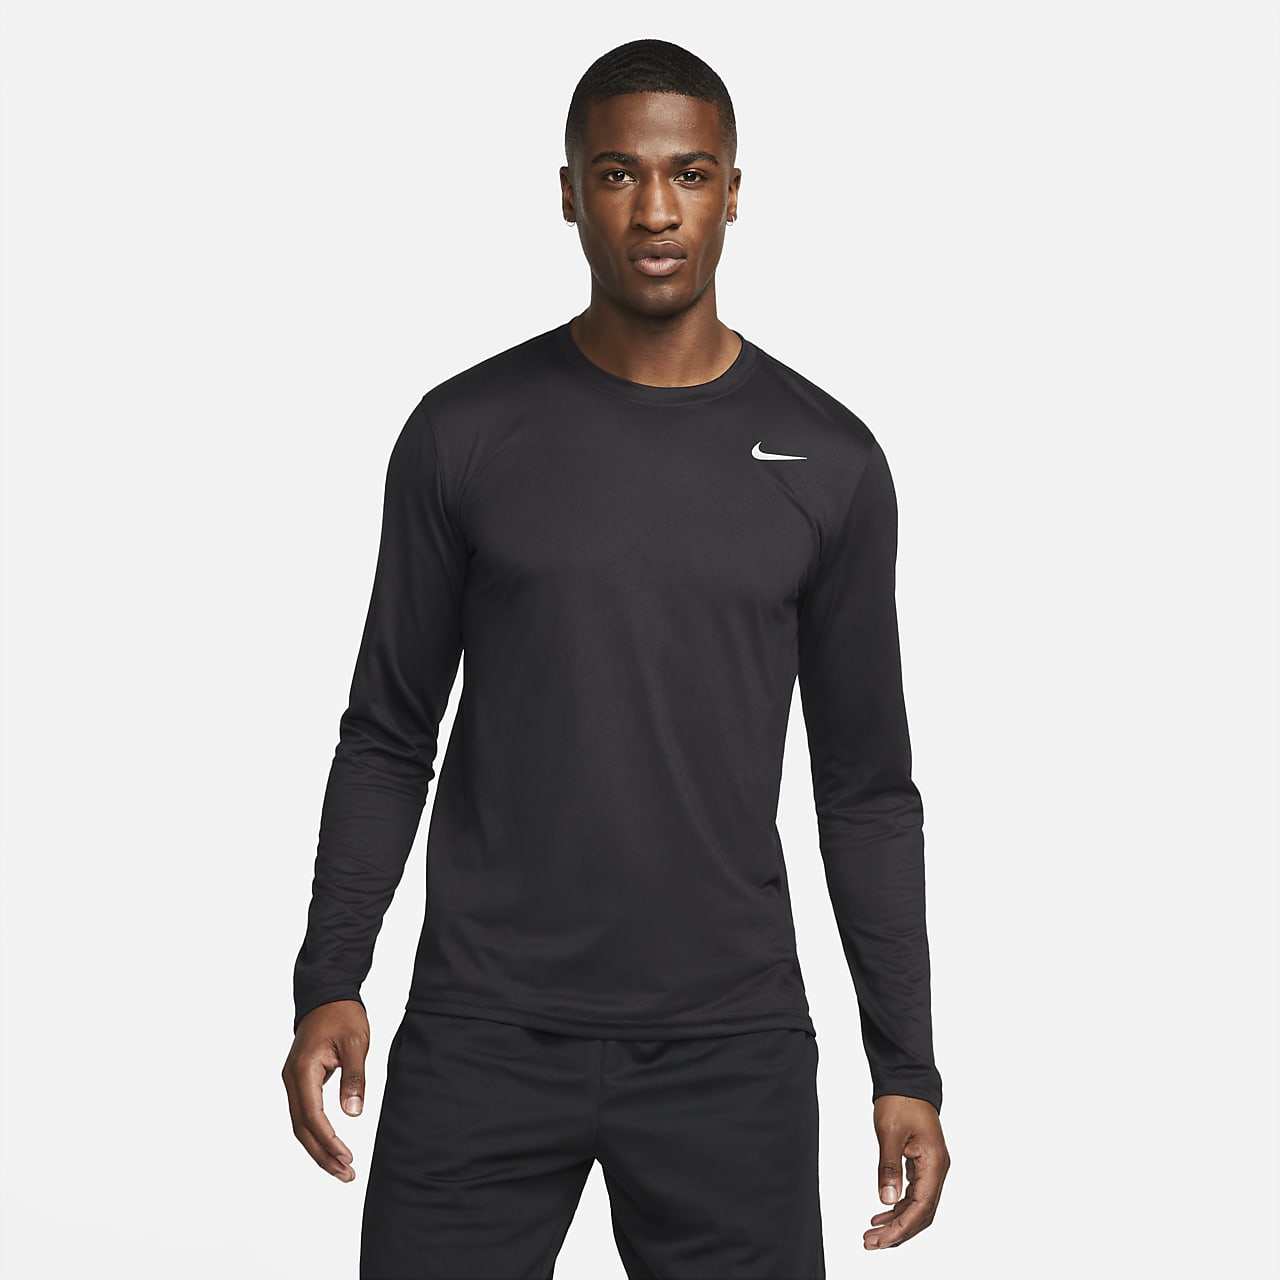 4c54b9a2b2 Nike Dri-FIT Legend 2.0 Men s Long-Sleeve Training Top. Nike.com